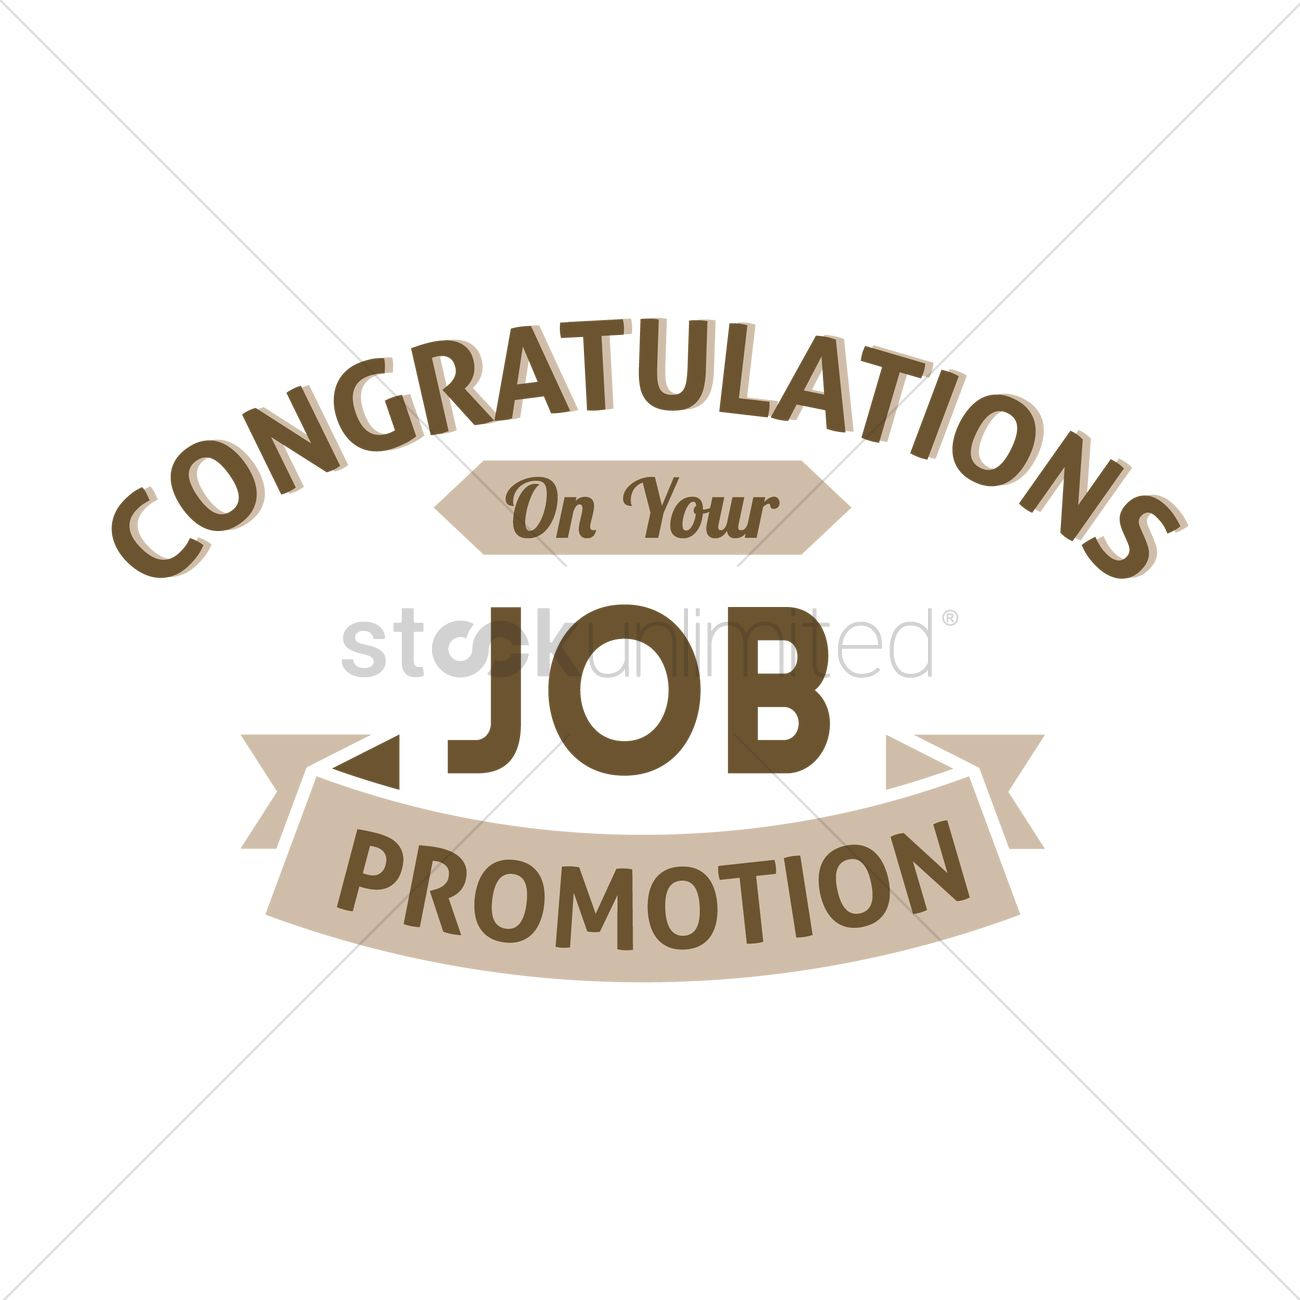 Congratulations for promotion in job - photo#1